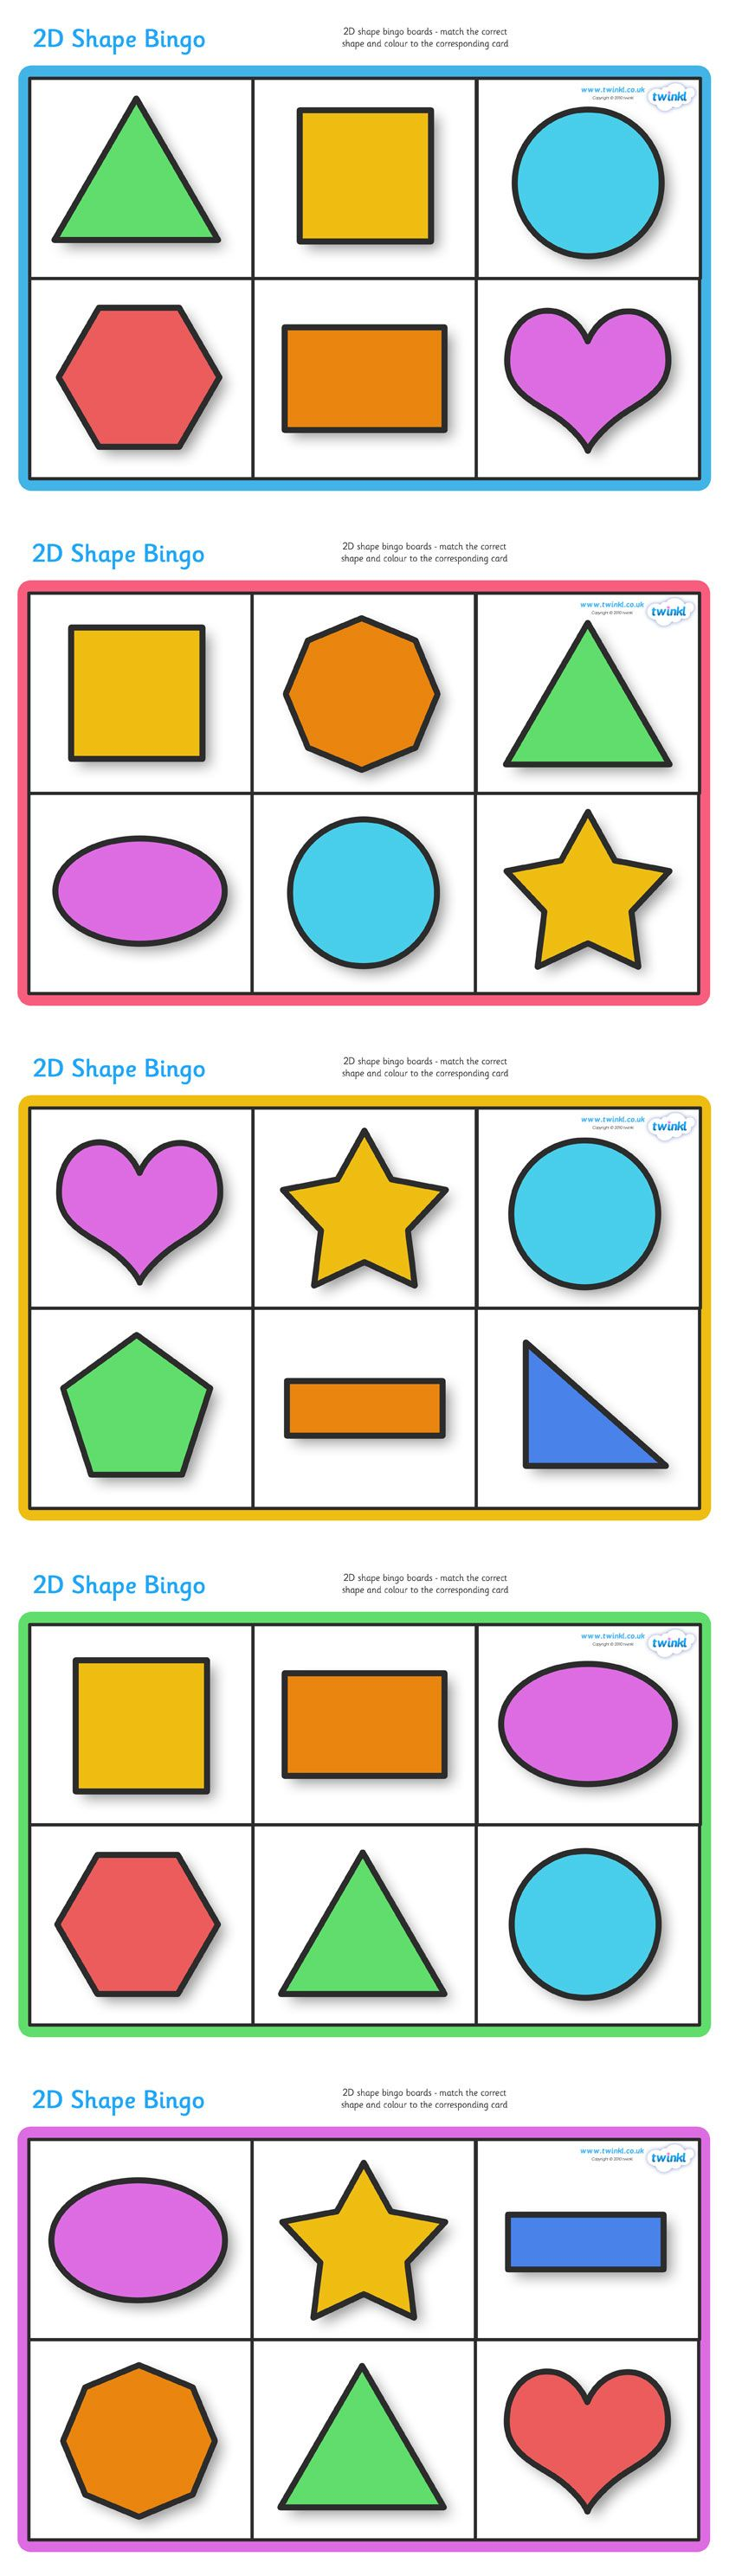 Christmas colouring in sheets twinkl - Twinkl Resources 2d Shape Bingo Classroom Printables For Pre School